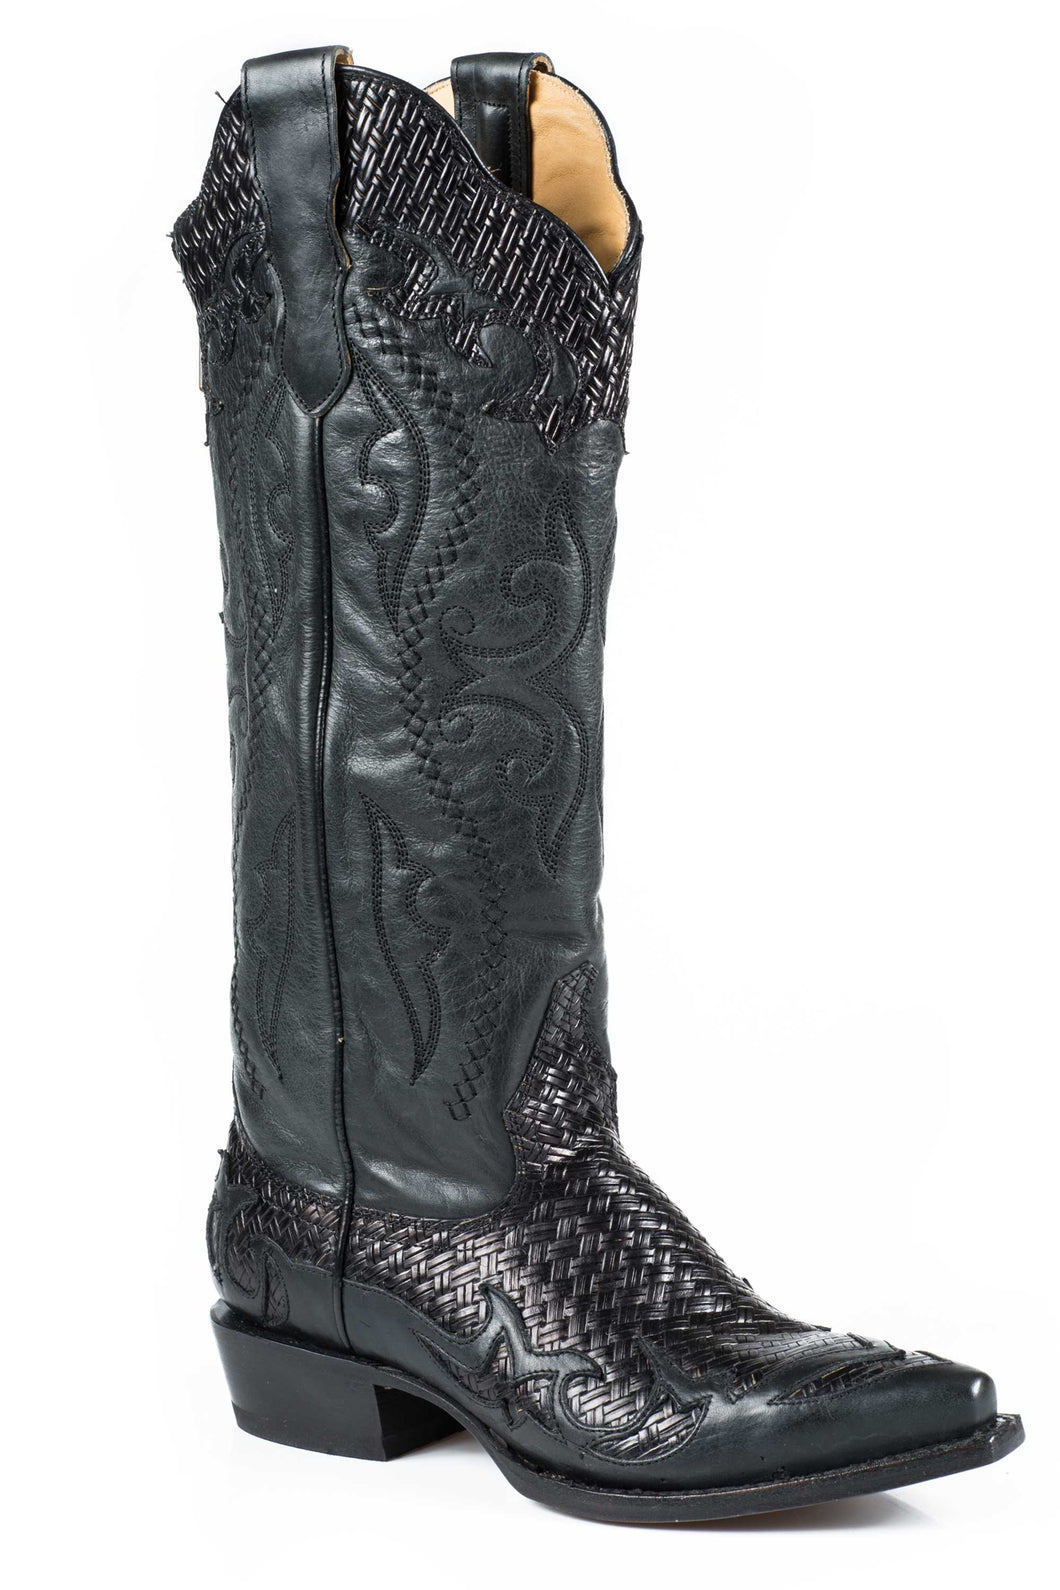 Bailey Boot Ladies Boot Black Basket Weave Vamp And 15